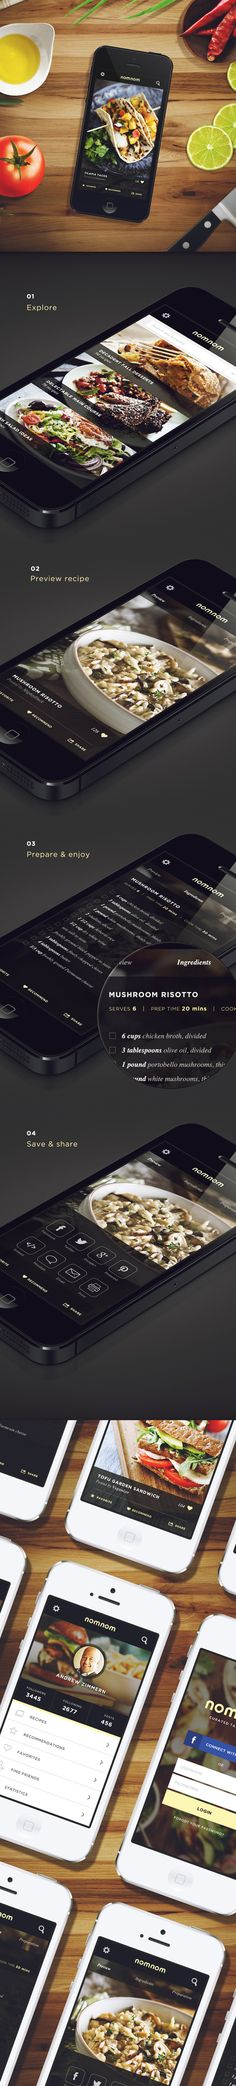 NomNom on App Design Served